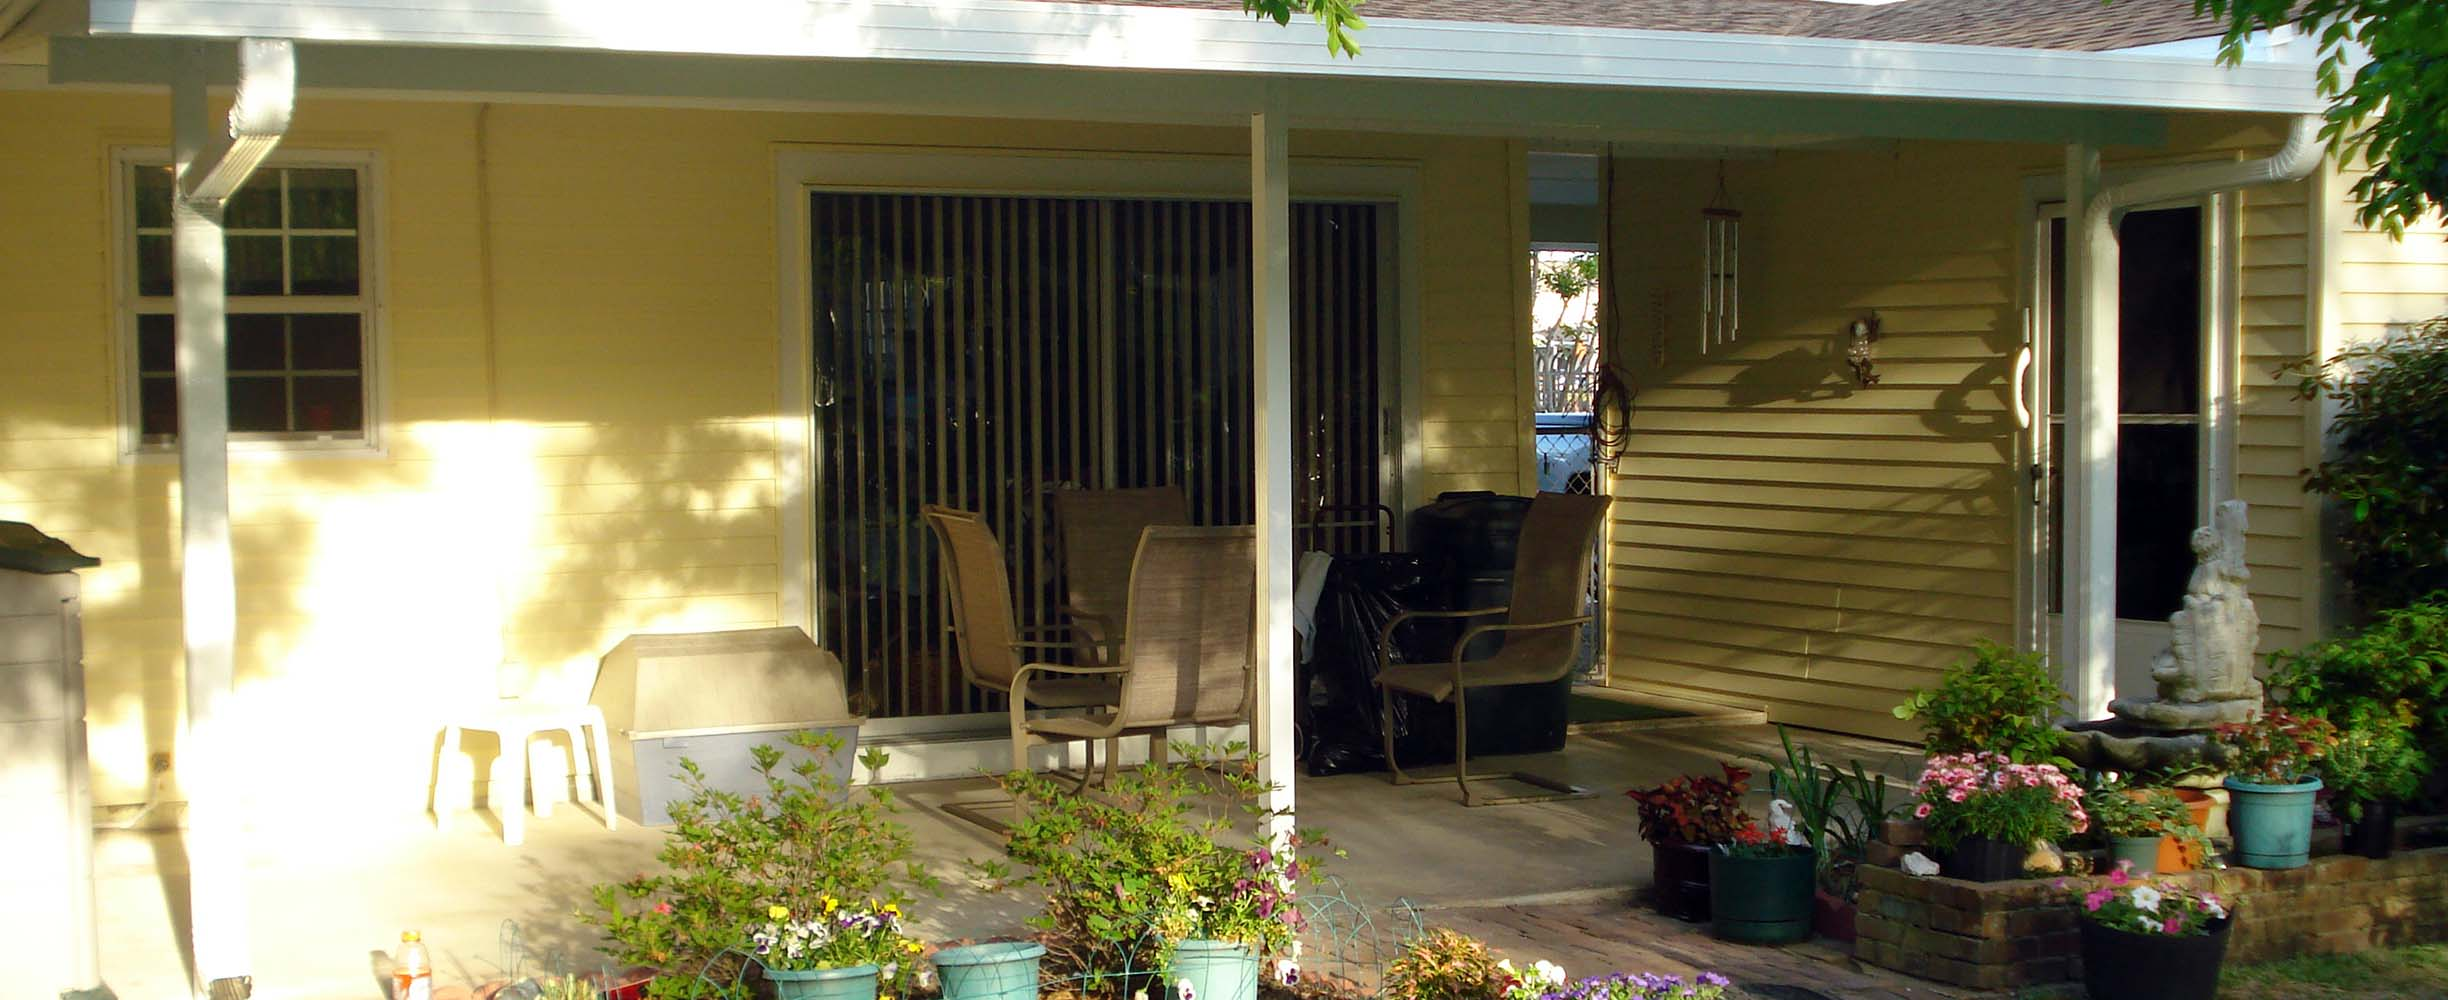 Patio cover are practical solutions that makes a patio space more practical in a very cost-effective manner.